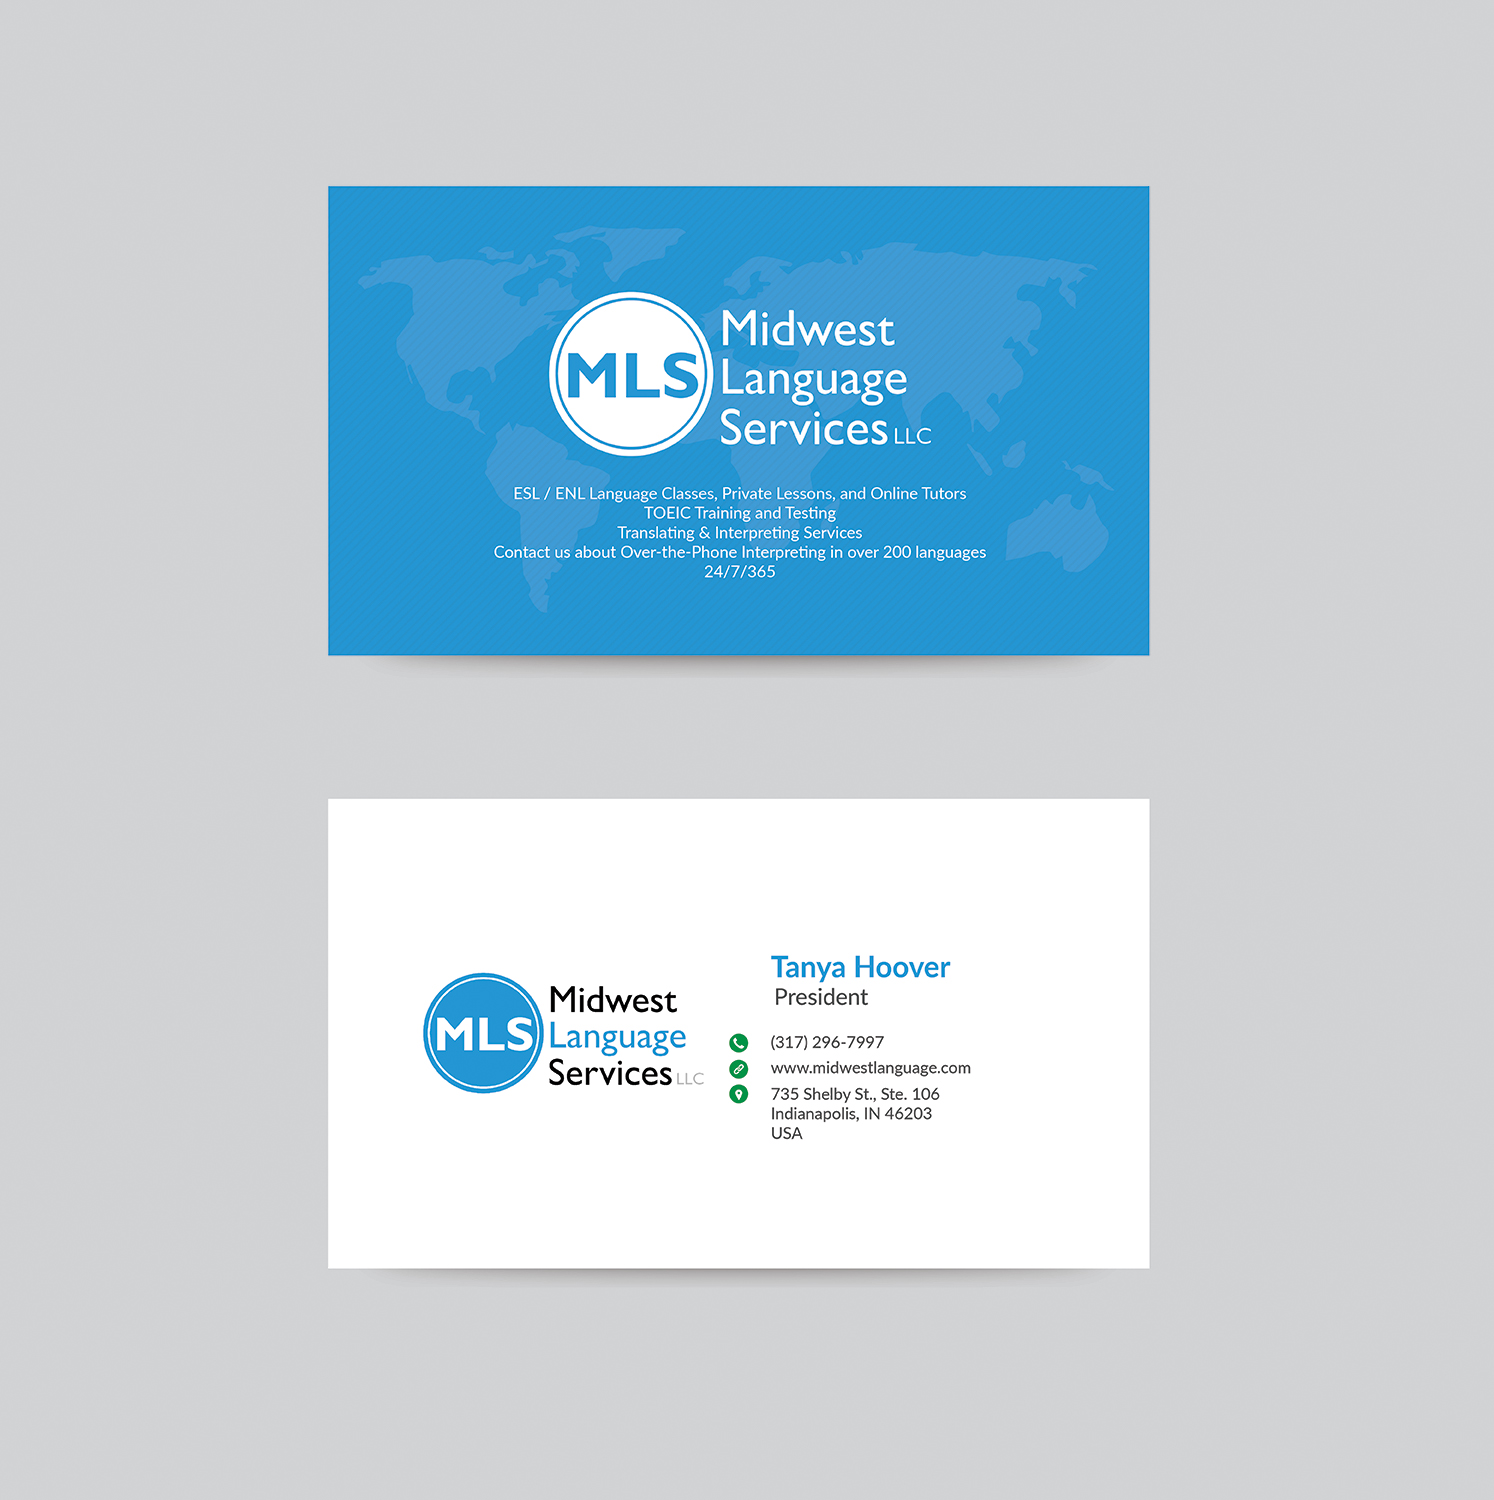 Serious modern business business card design for midwest language business card design by bdesigner9 for midwest language services llc design 17762528 reheart Choice Image